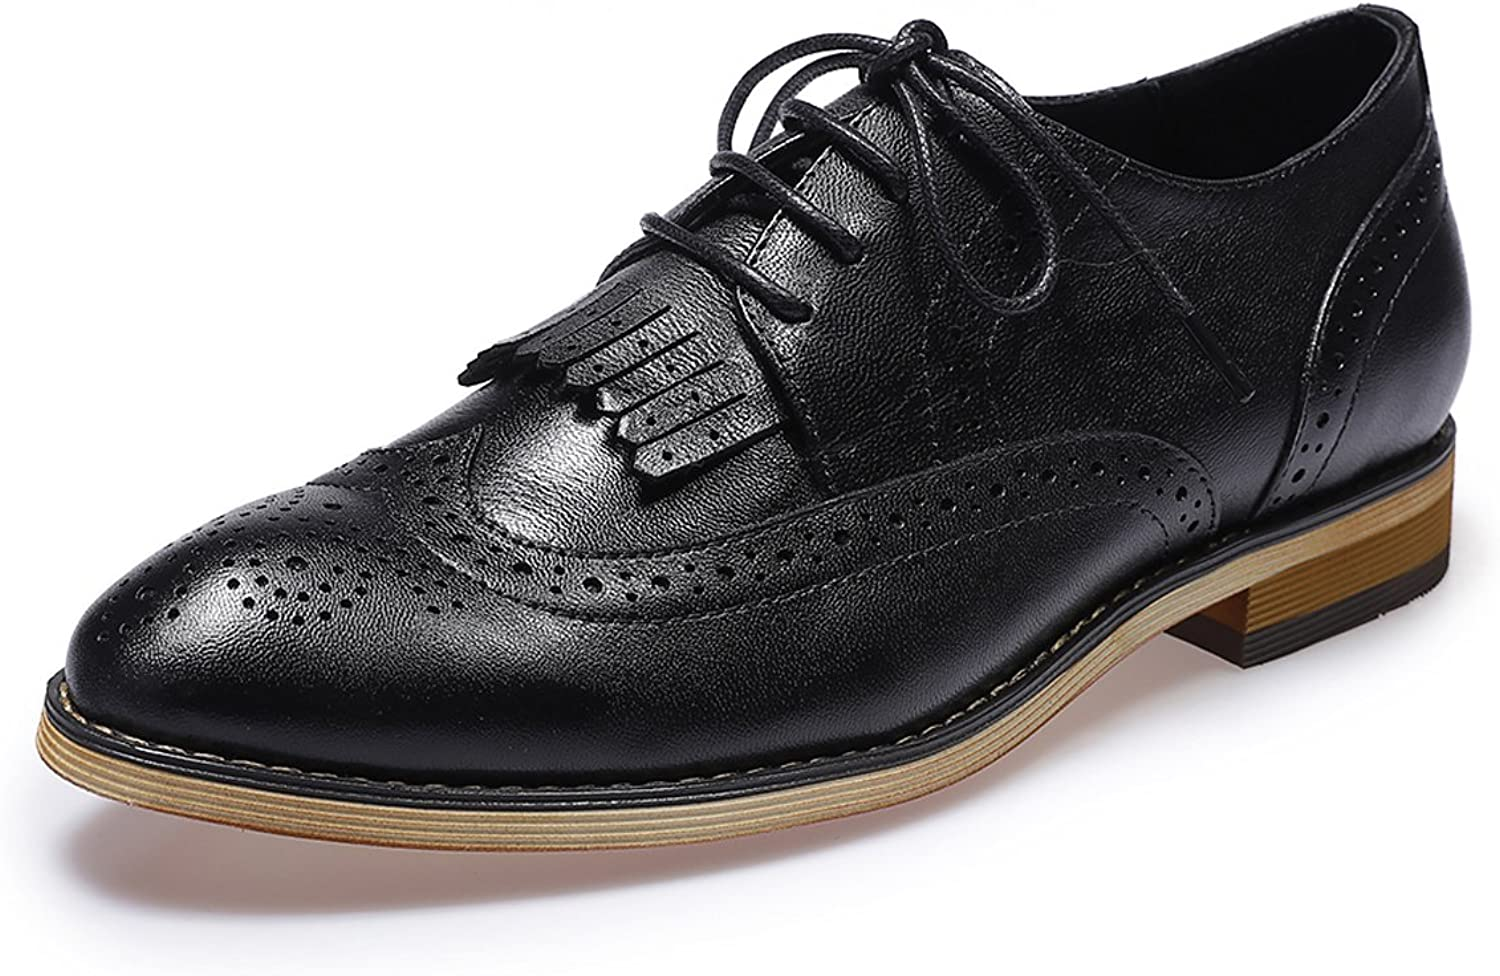 Mona Flying Women Oxford shoes Leather Tassel Perforated Lace up Wingtip Saddle Flat Brogue shoes